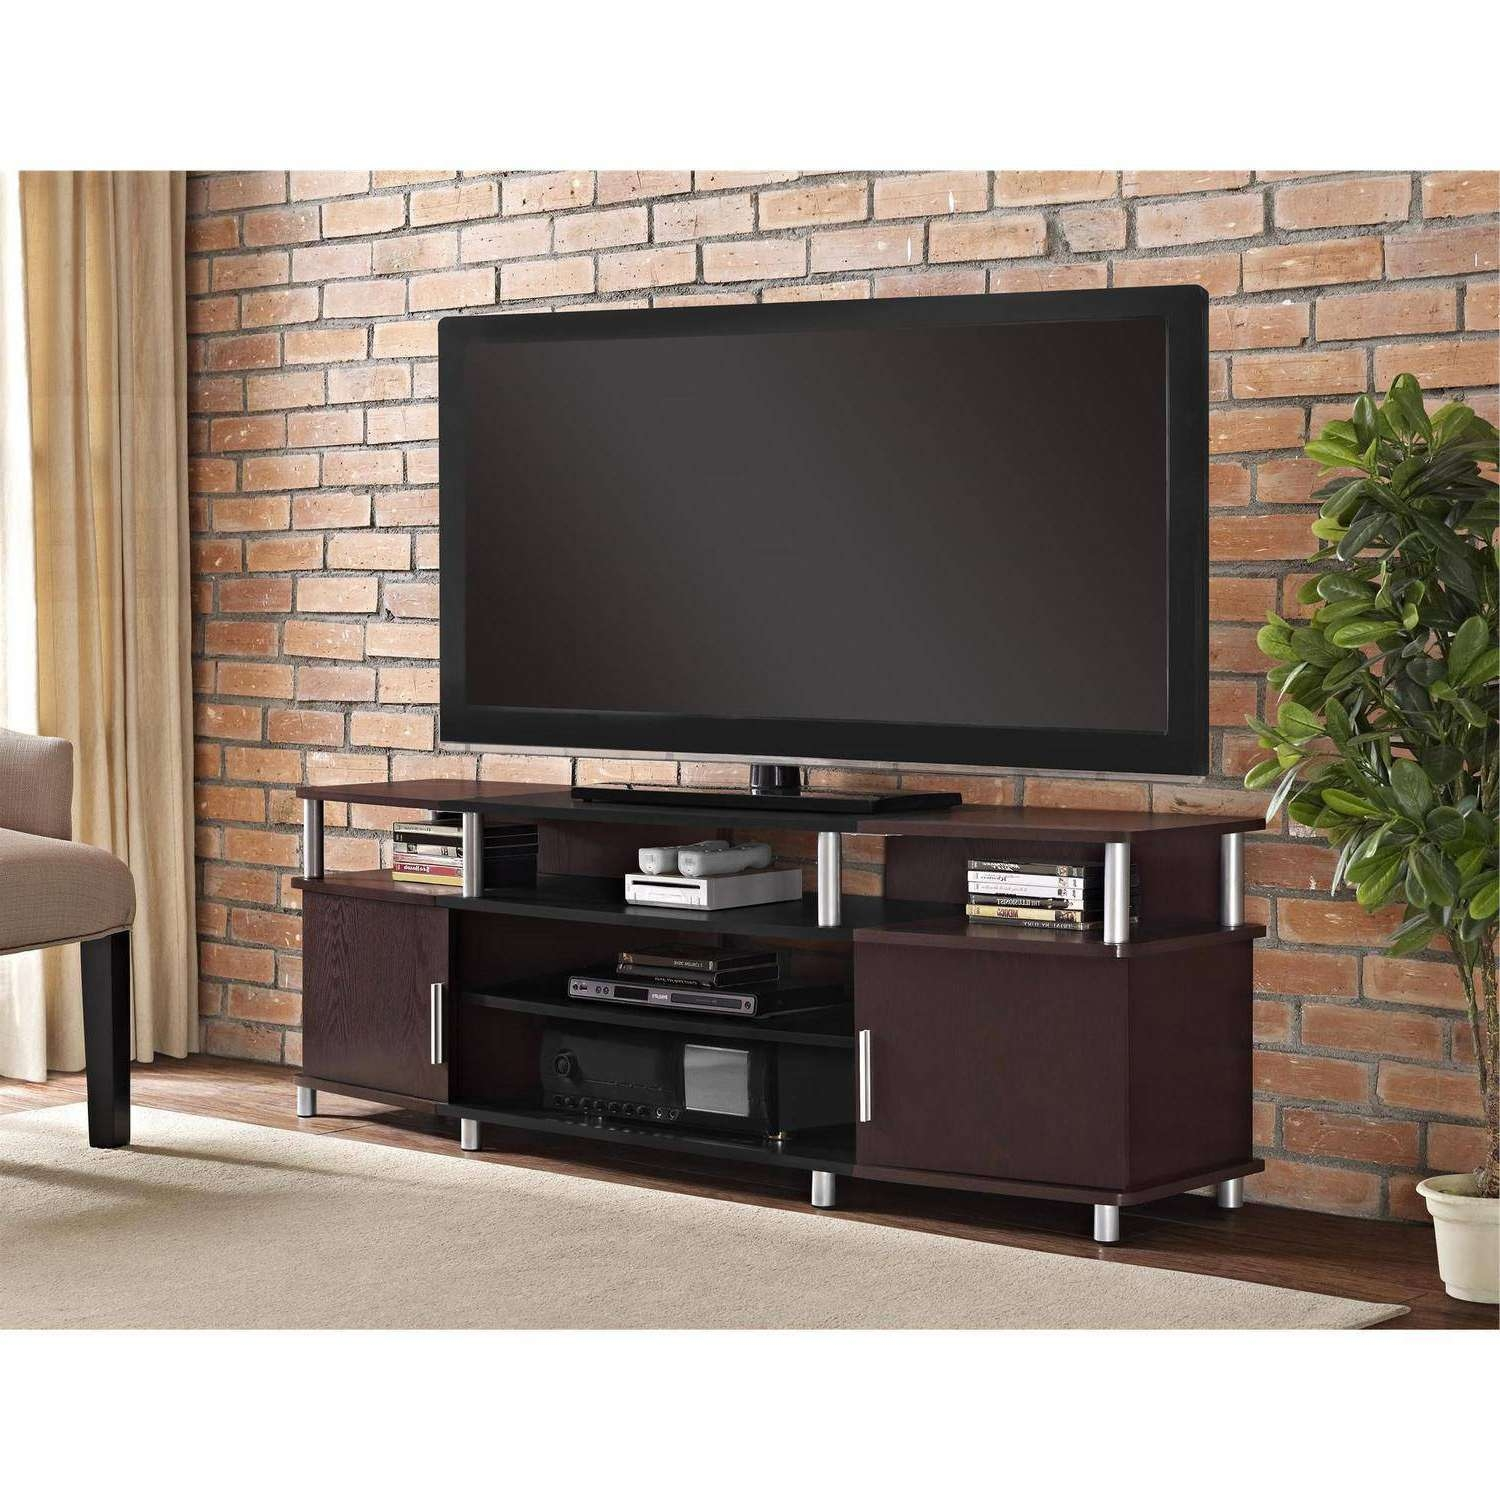 Tv Stands & Entertainment Centers – Walmart Throughout Storage Tv Stands (View 14 of 15)